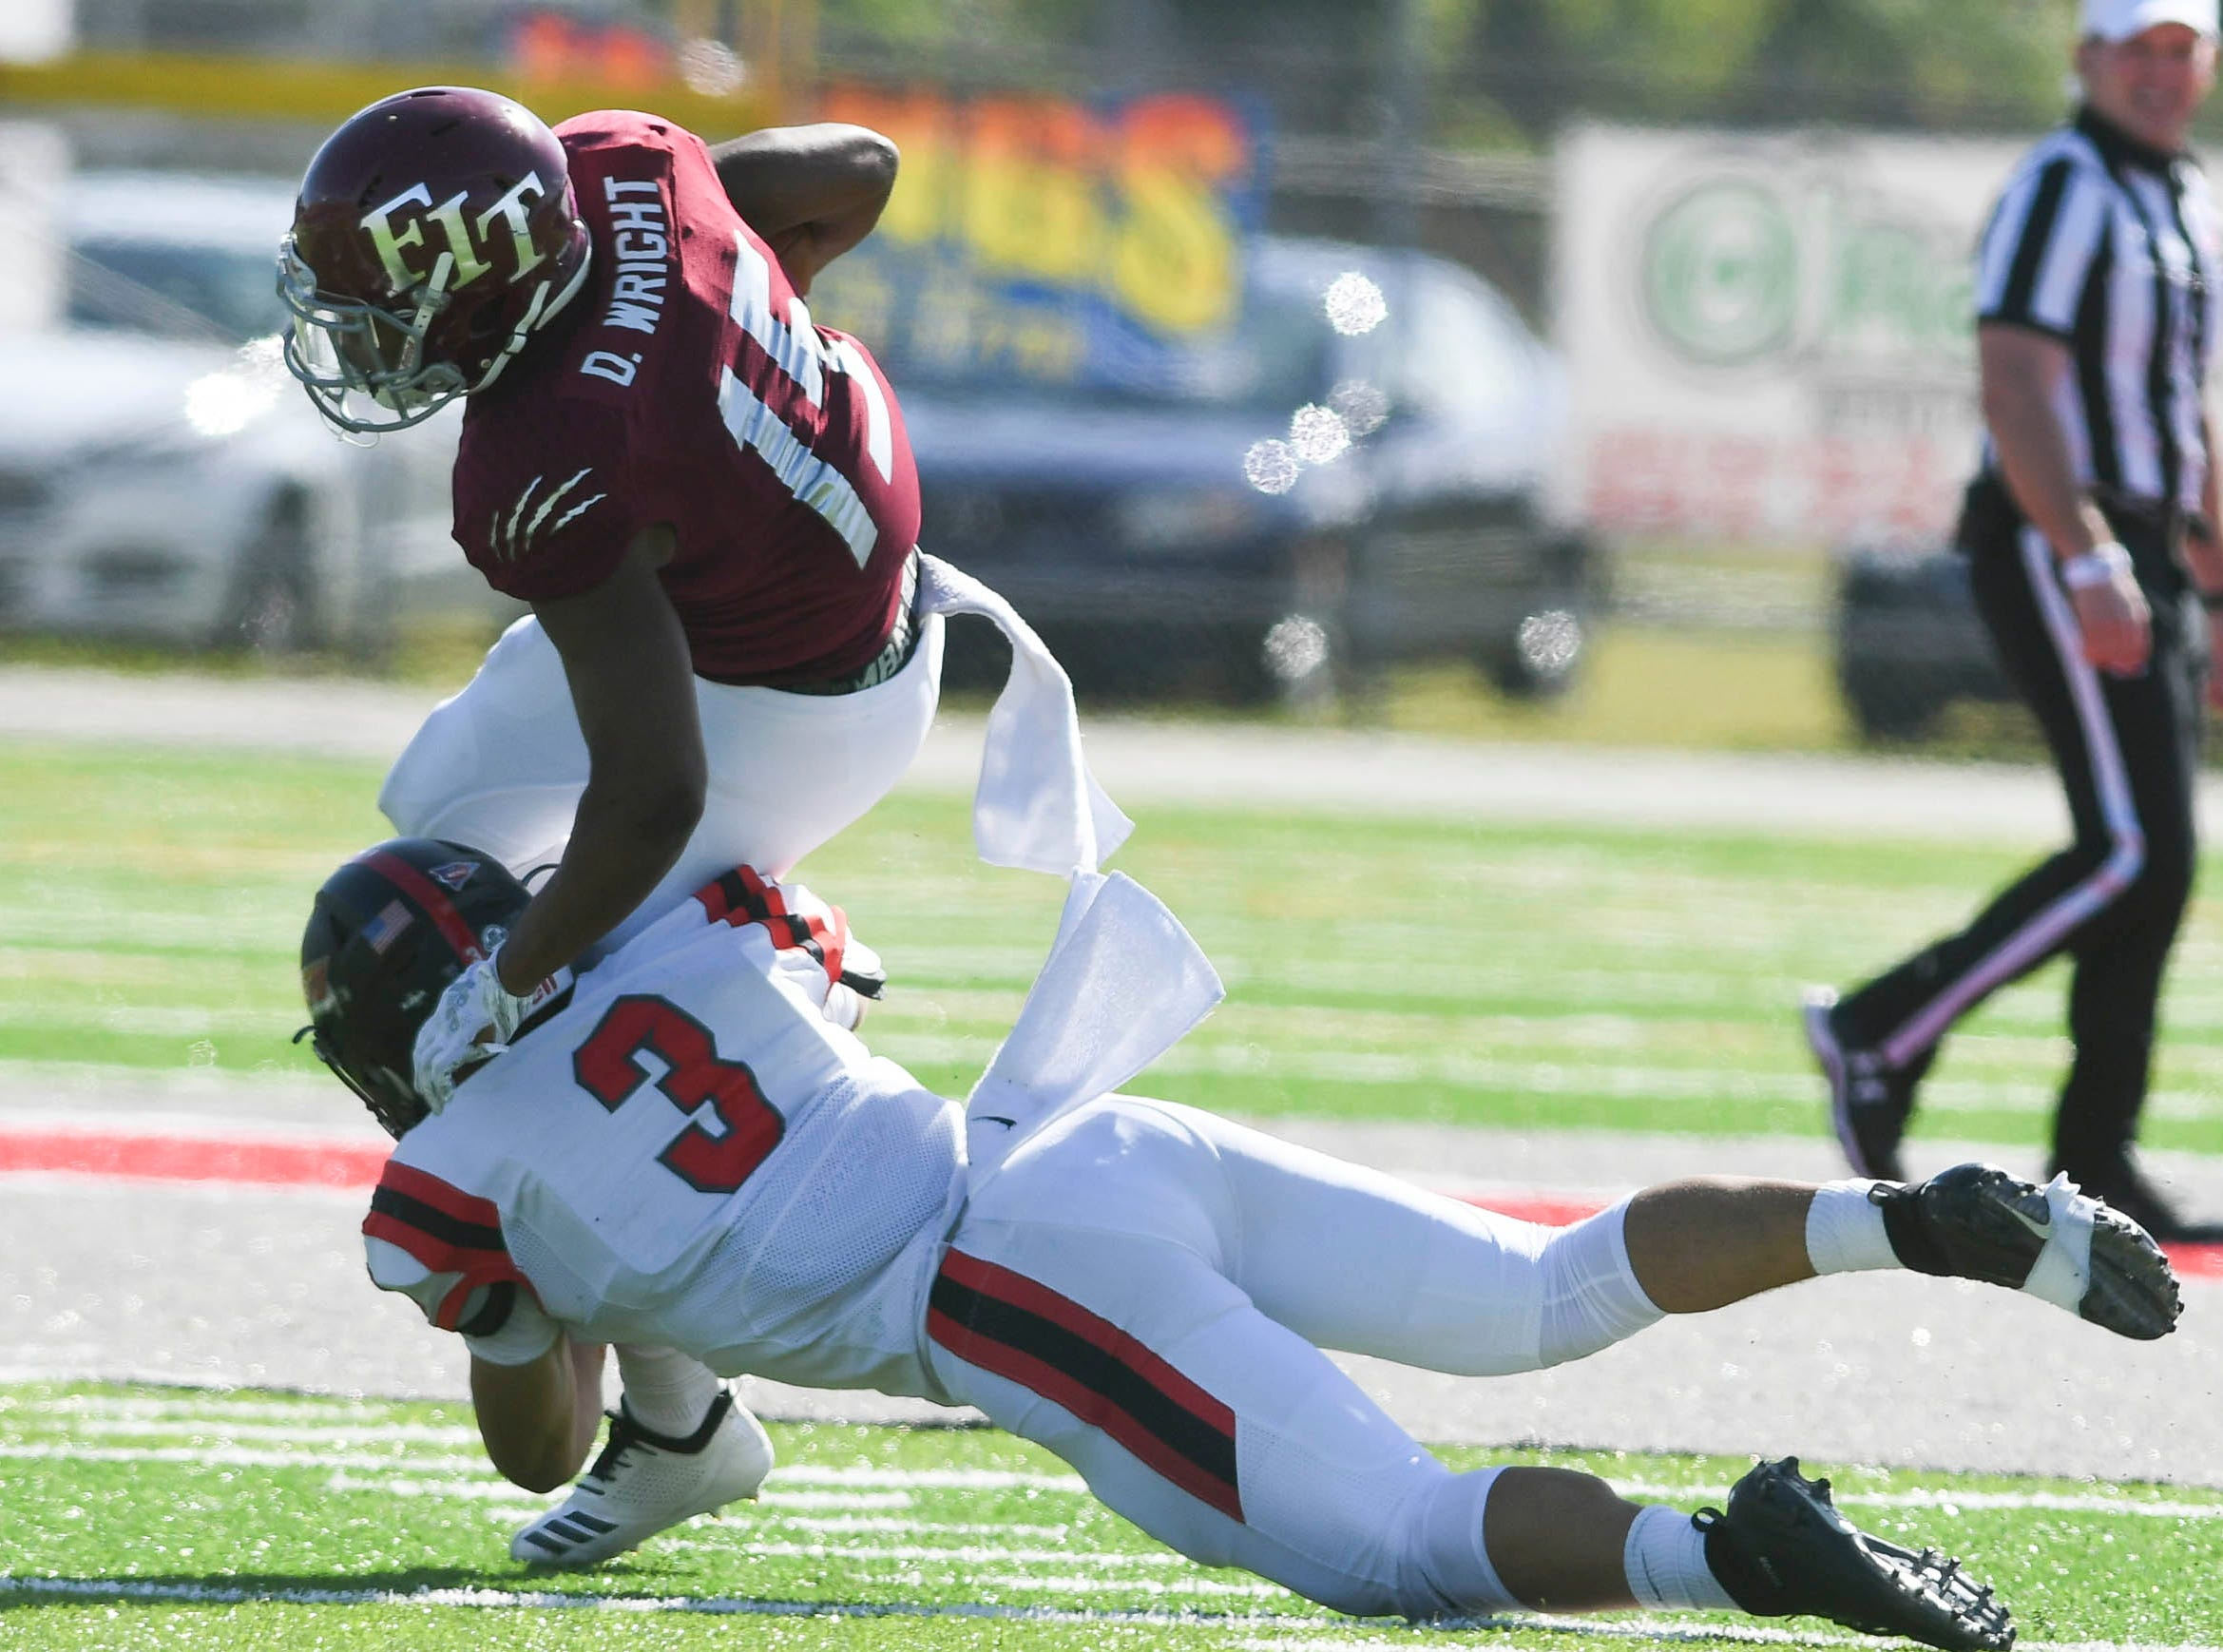 Derrick Wright of Florida Tech is brought down by Matthew Thomas of North Greenville during Saturday's game.